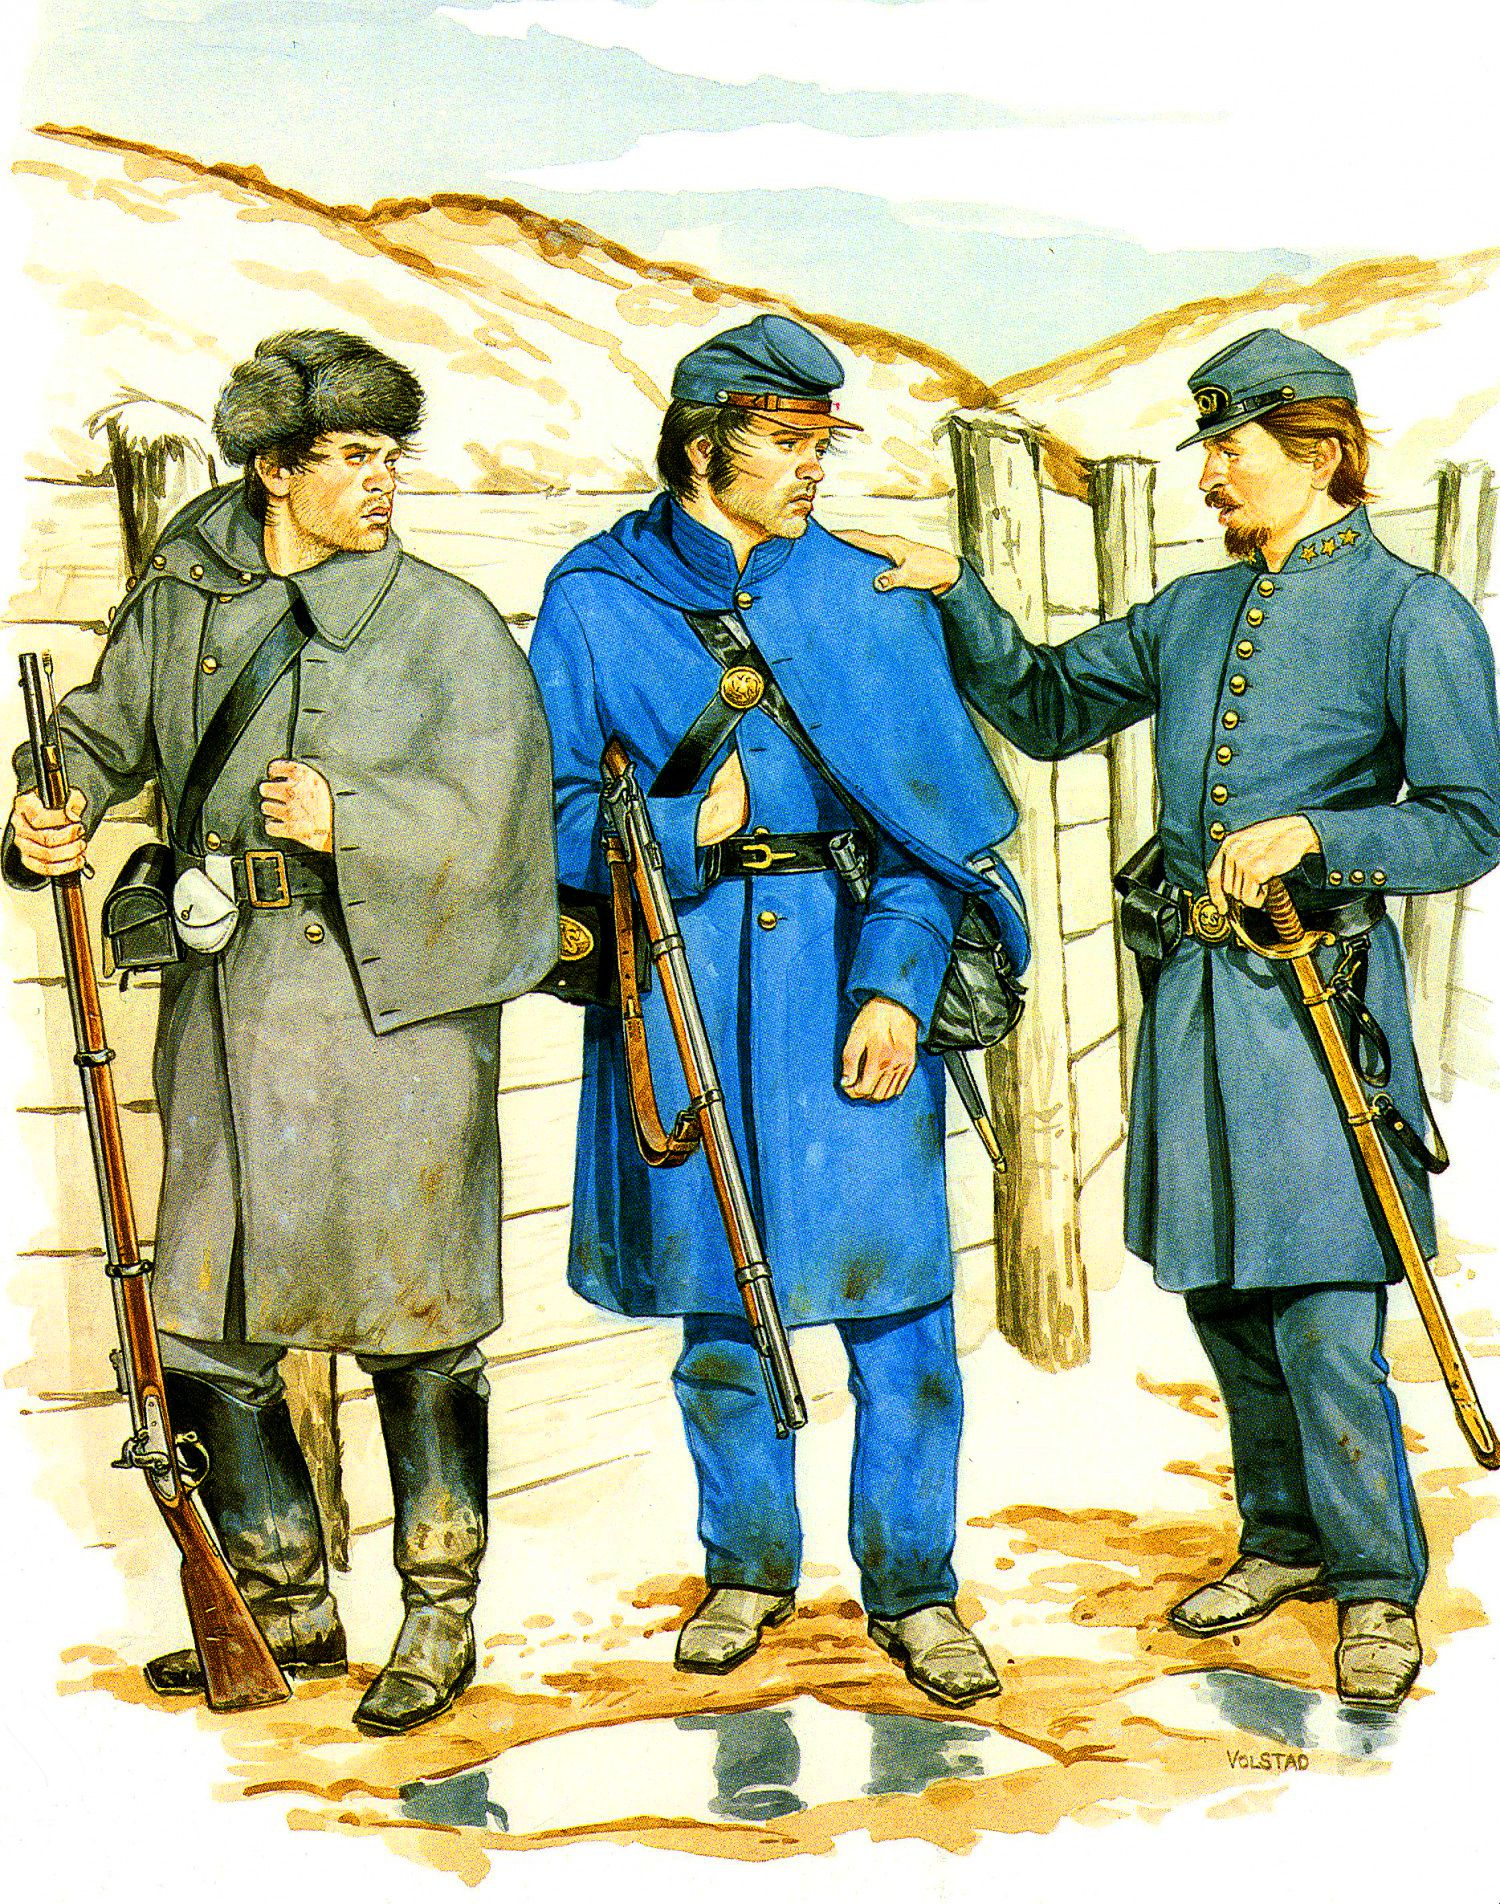 44th Georgia Infantry Regiment During The American Civil